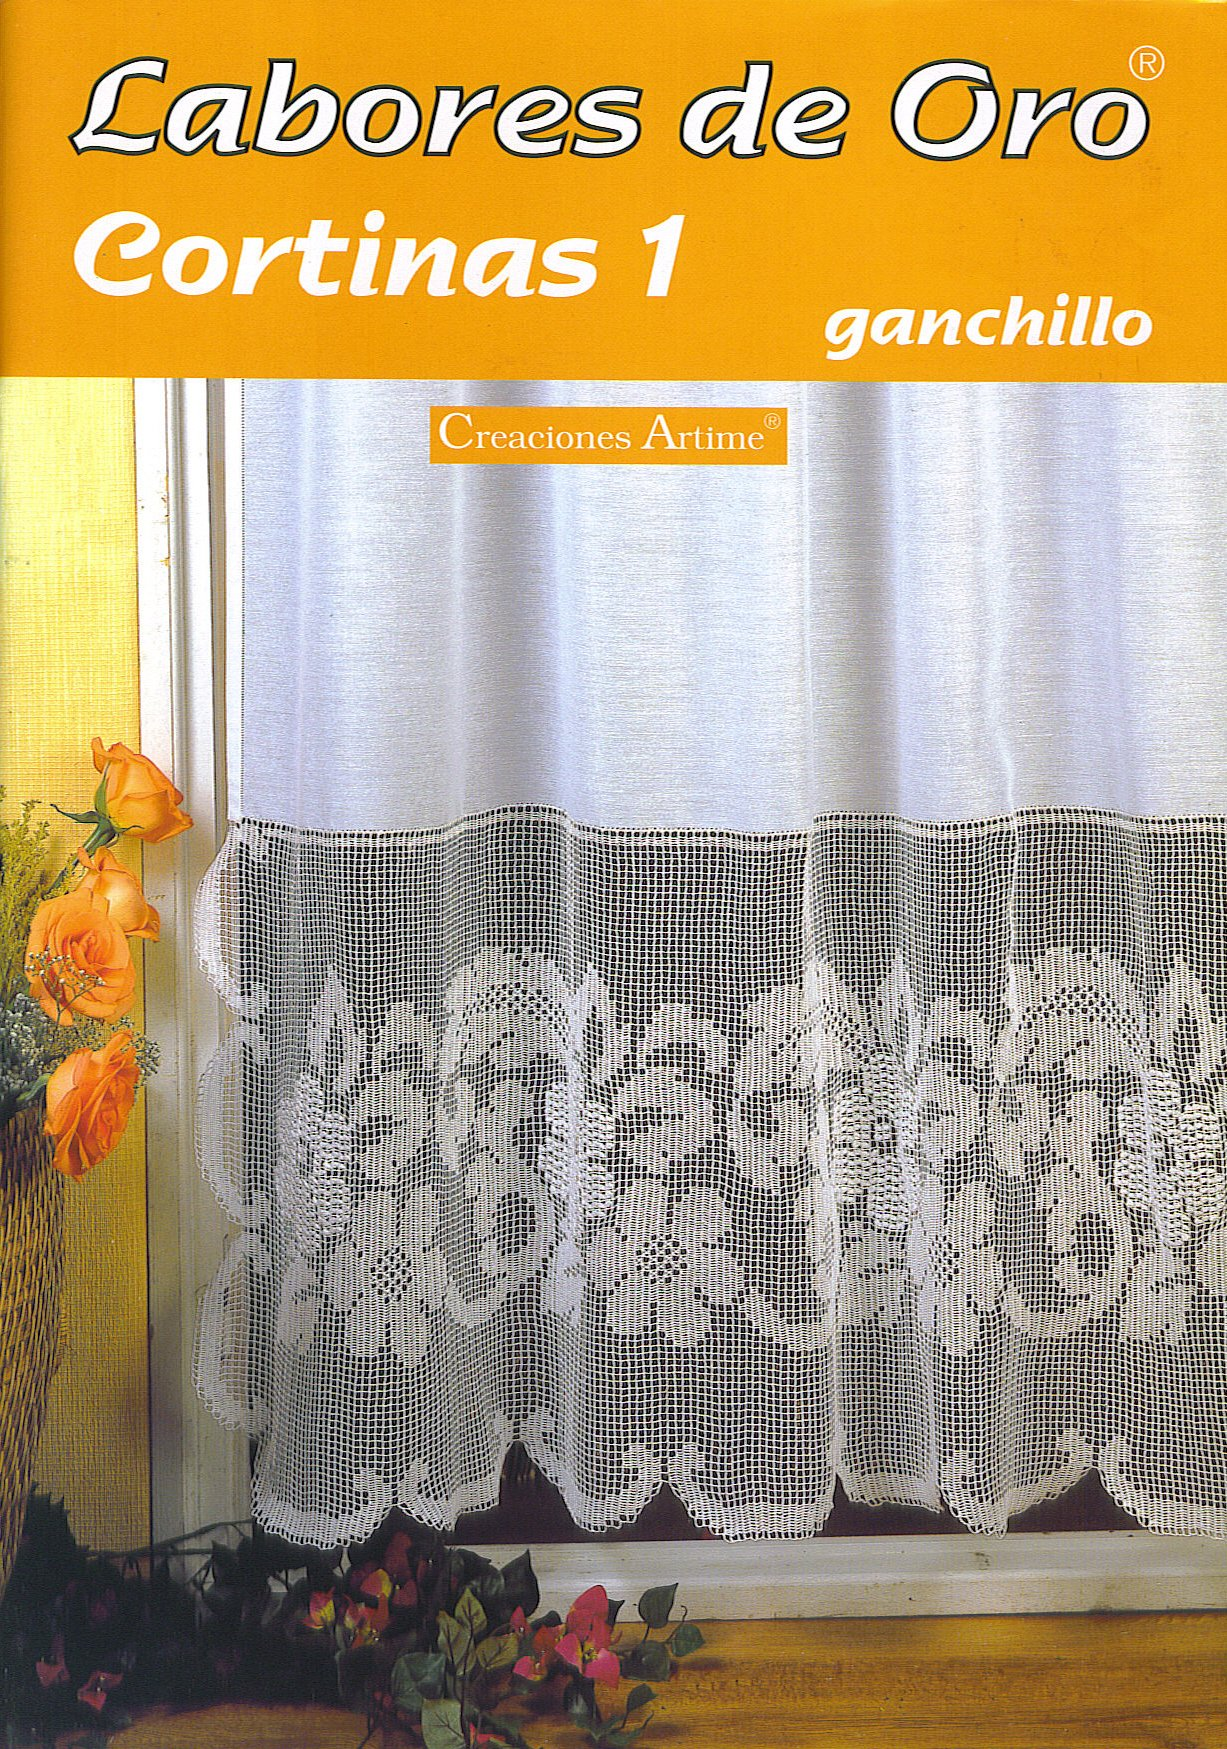 Pin labores oro ganchillo cortinas curtains pictures on for Cortinas de ganchillo